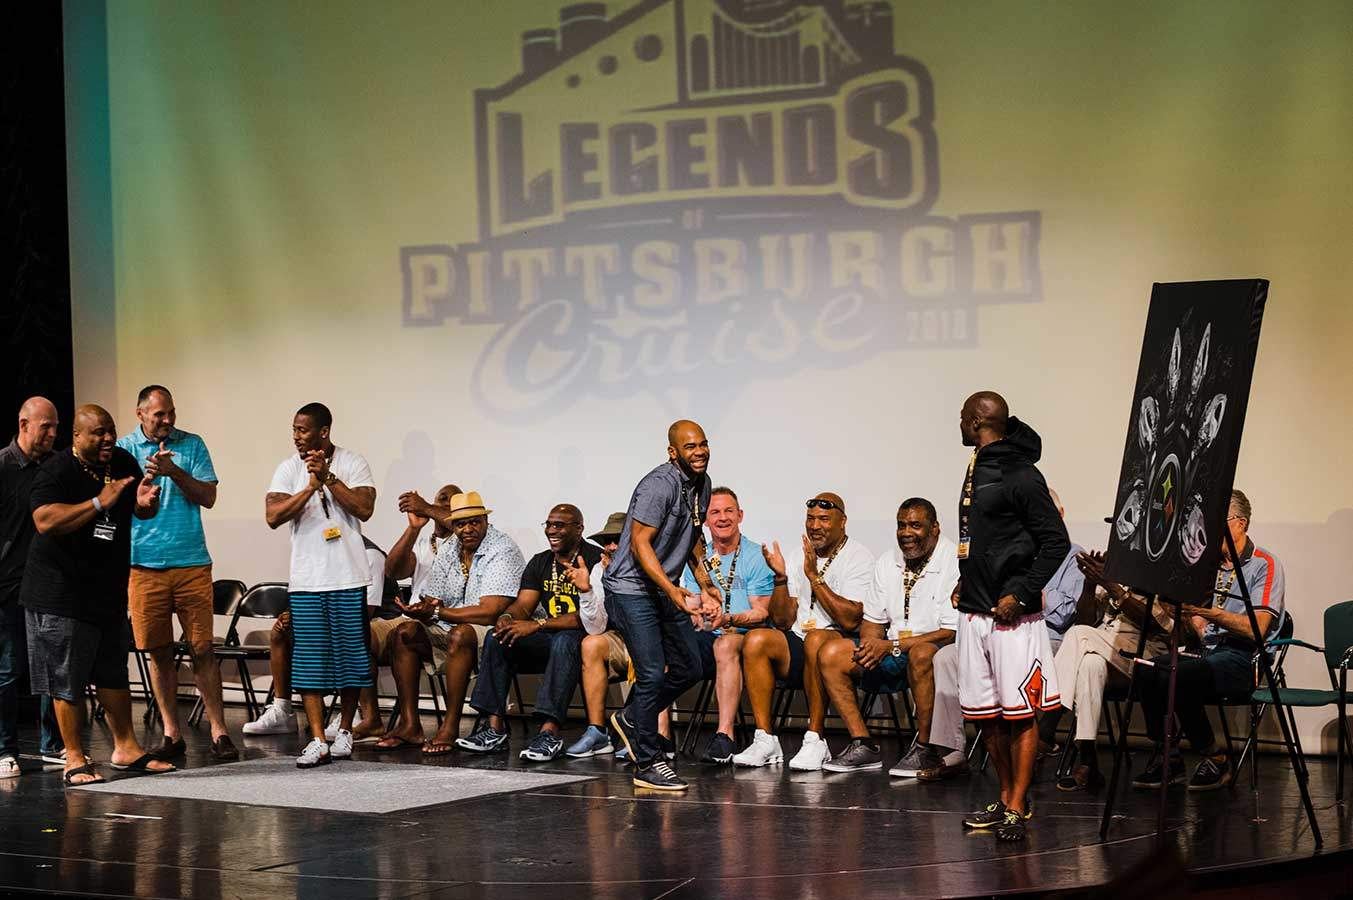 19_2018_legends_of_pittsburgh_cruise_photo